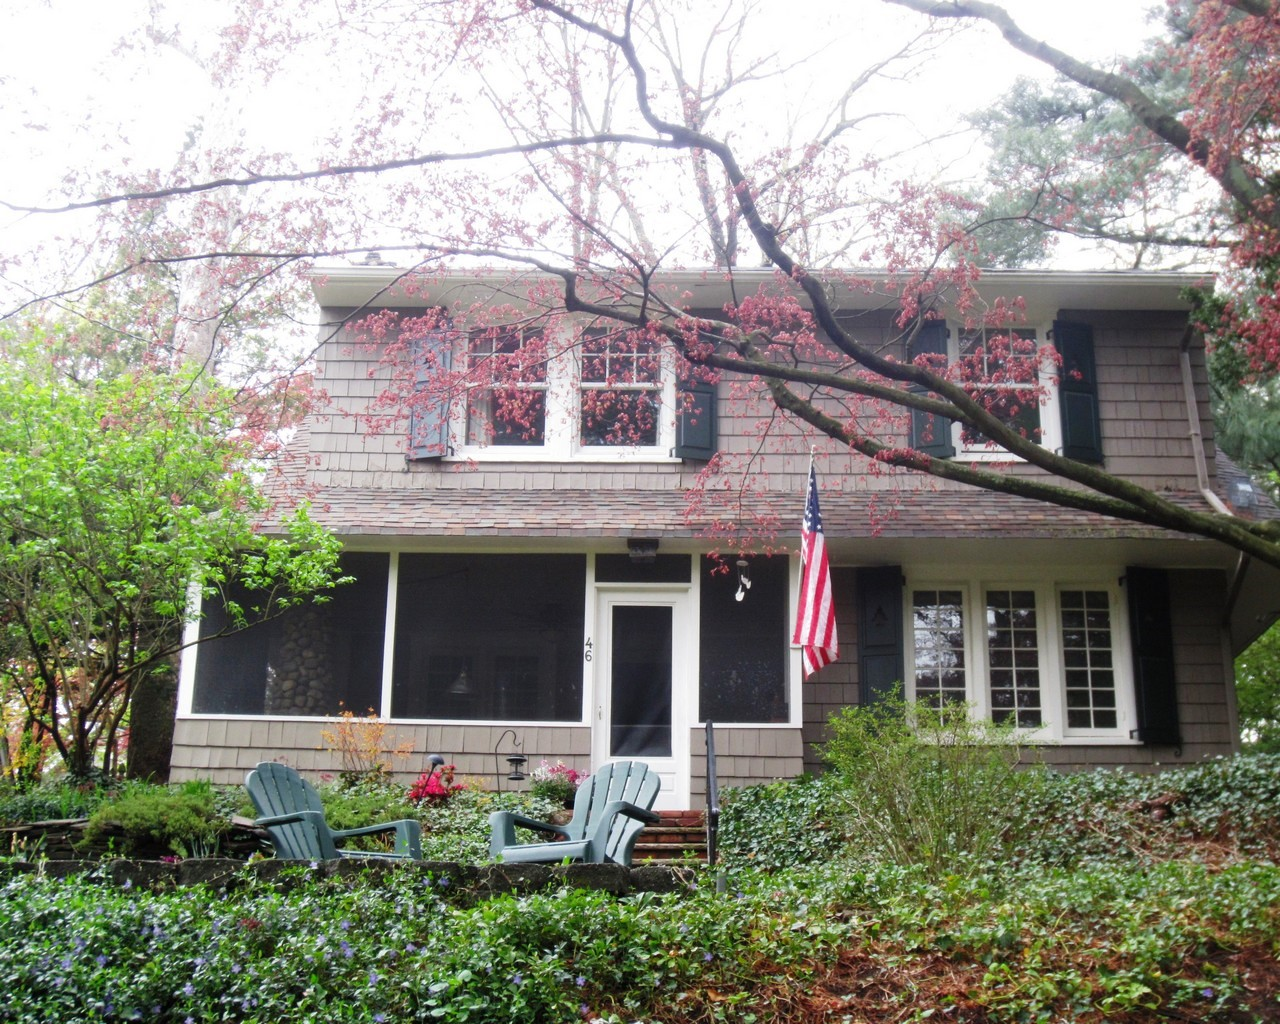 Single Family Home for Sale at Craftsman Colonial 46 Cedars Road Caldwell, New Jersey 07006 United States